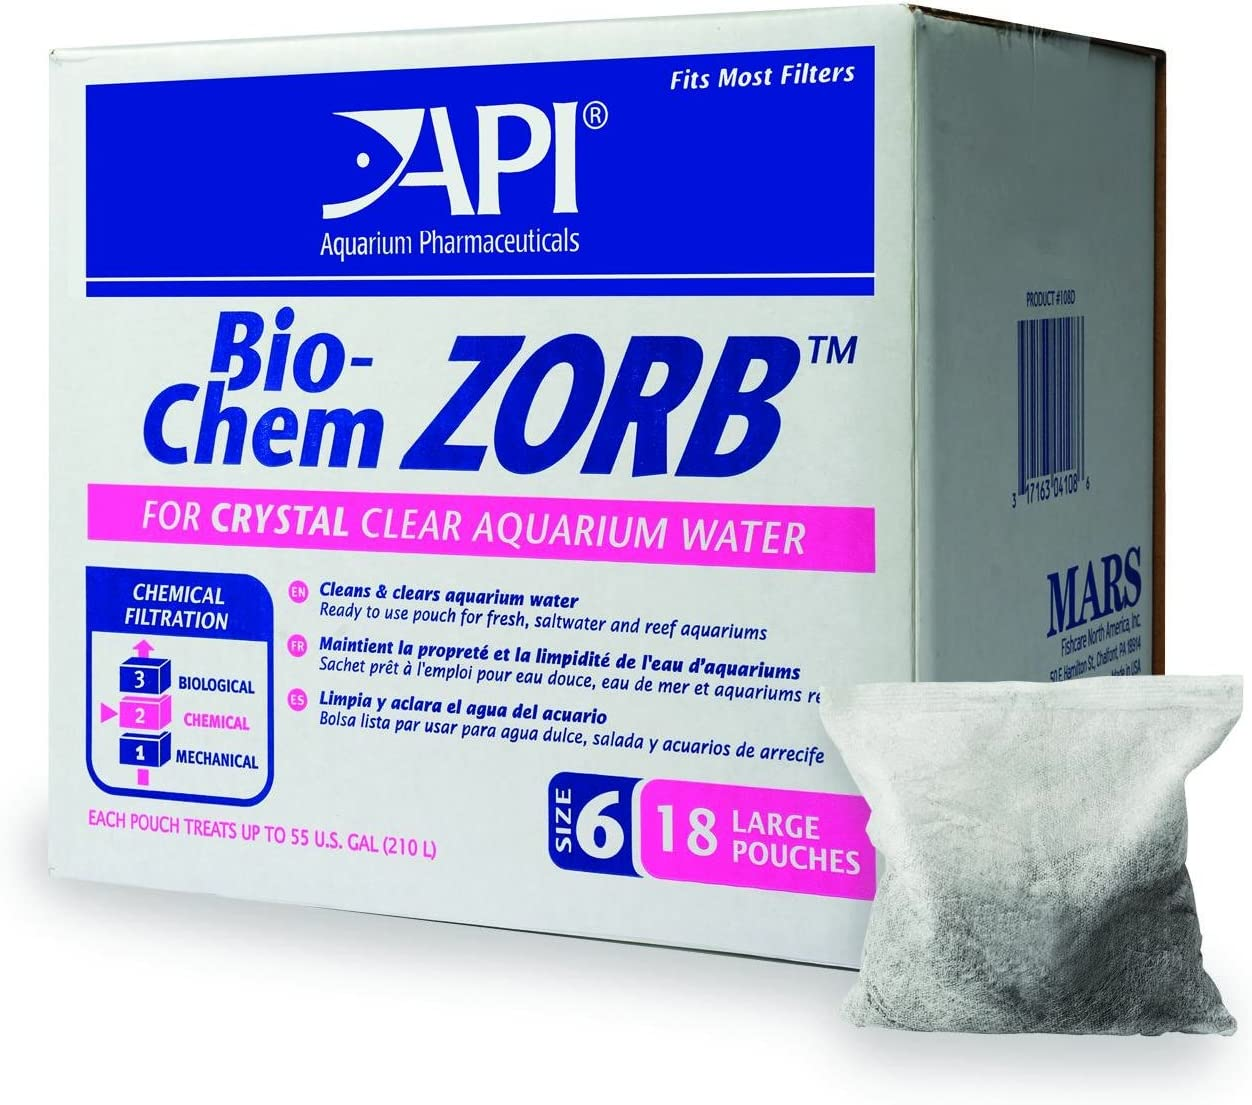 B0002AQNY0 API ZORB Filtration Media, Variety of Aquarium Filtration Pouches, Fit Most Canister Filters, Clean and Clear Water, Remove toxins That can be Harmful to Fish and Lead to Cloudy Water or Algae Growth 712aCEDoZgL